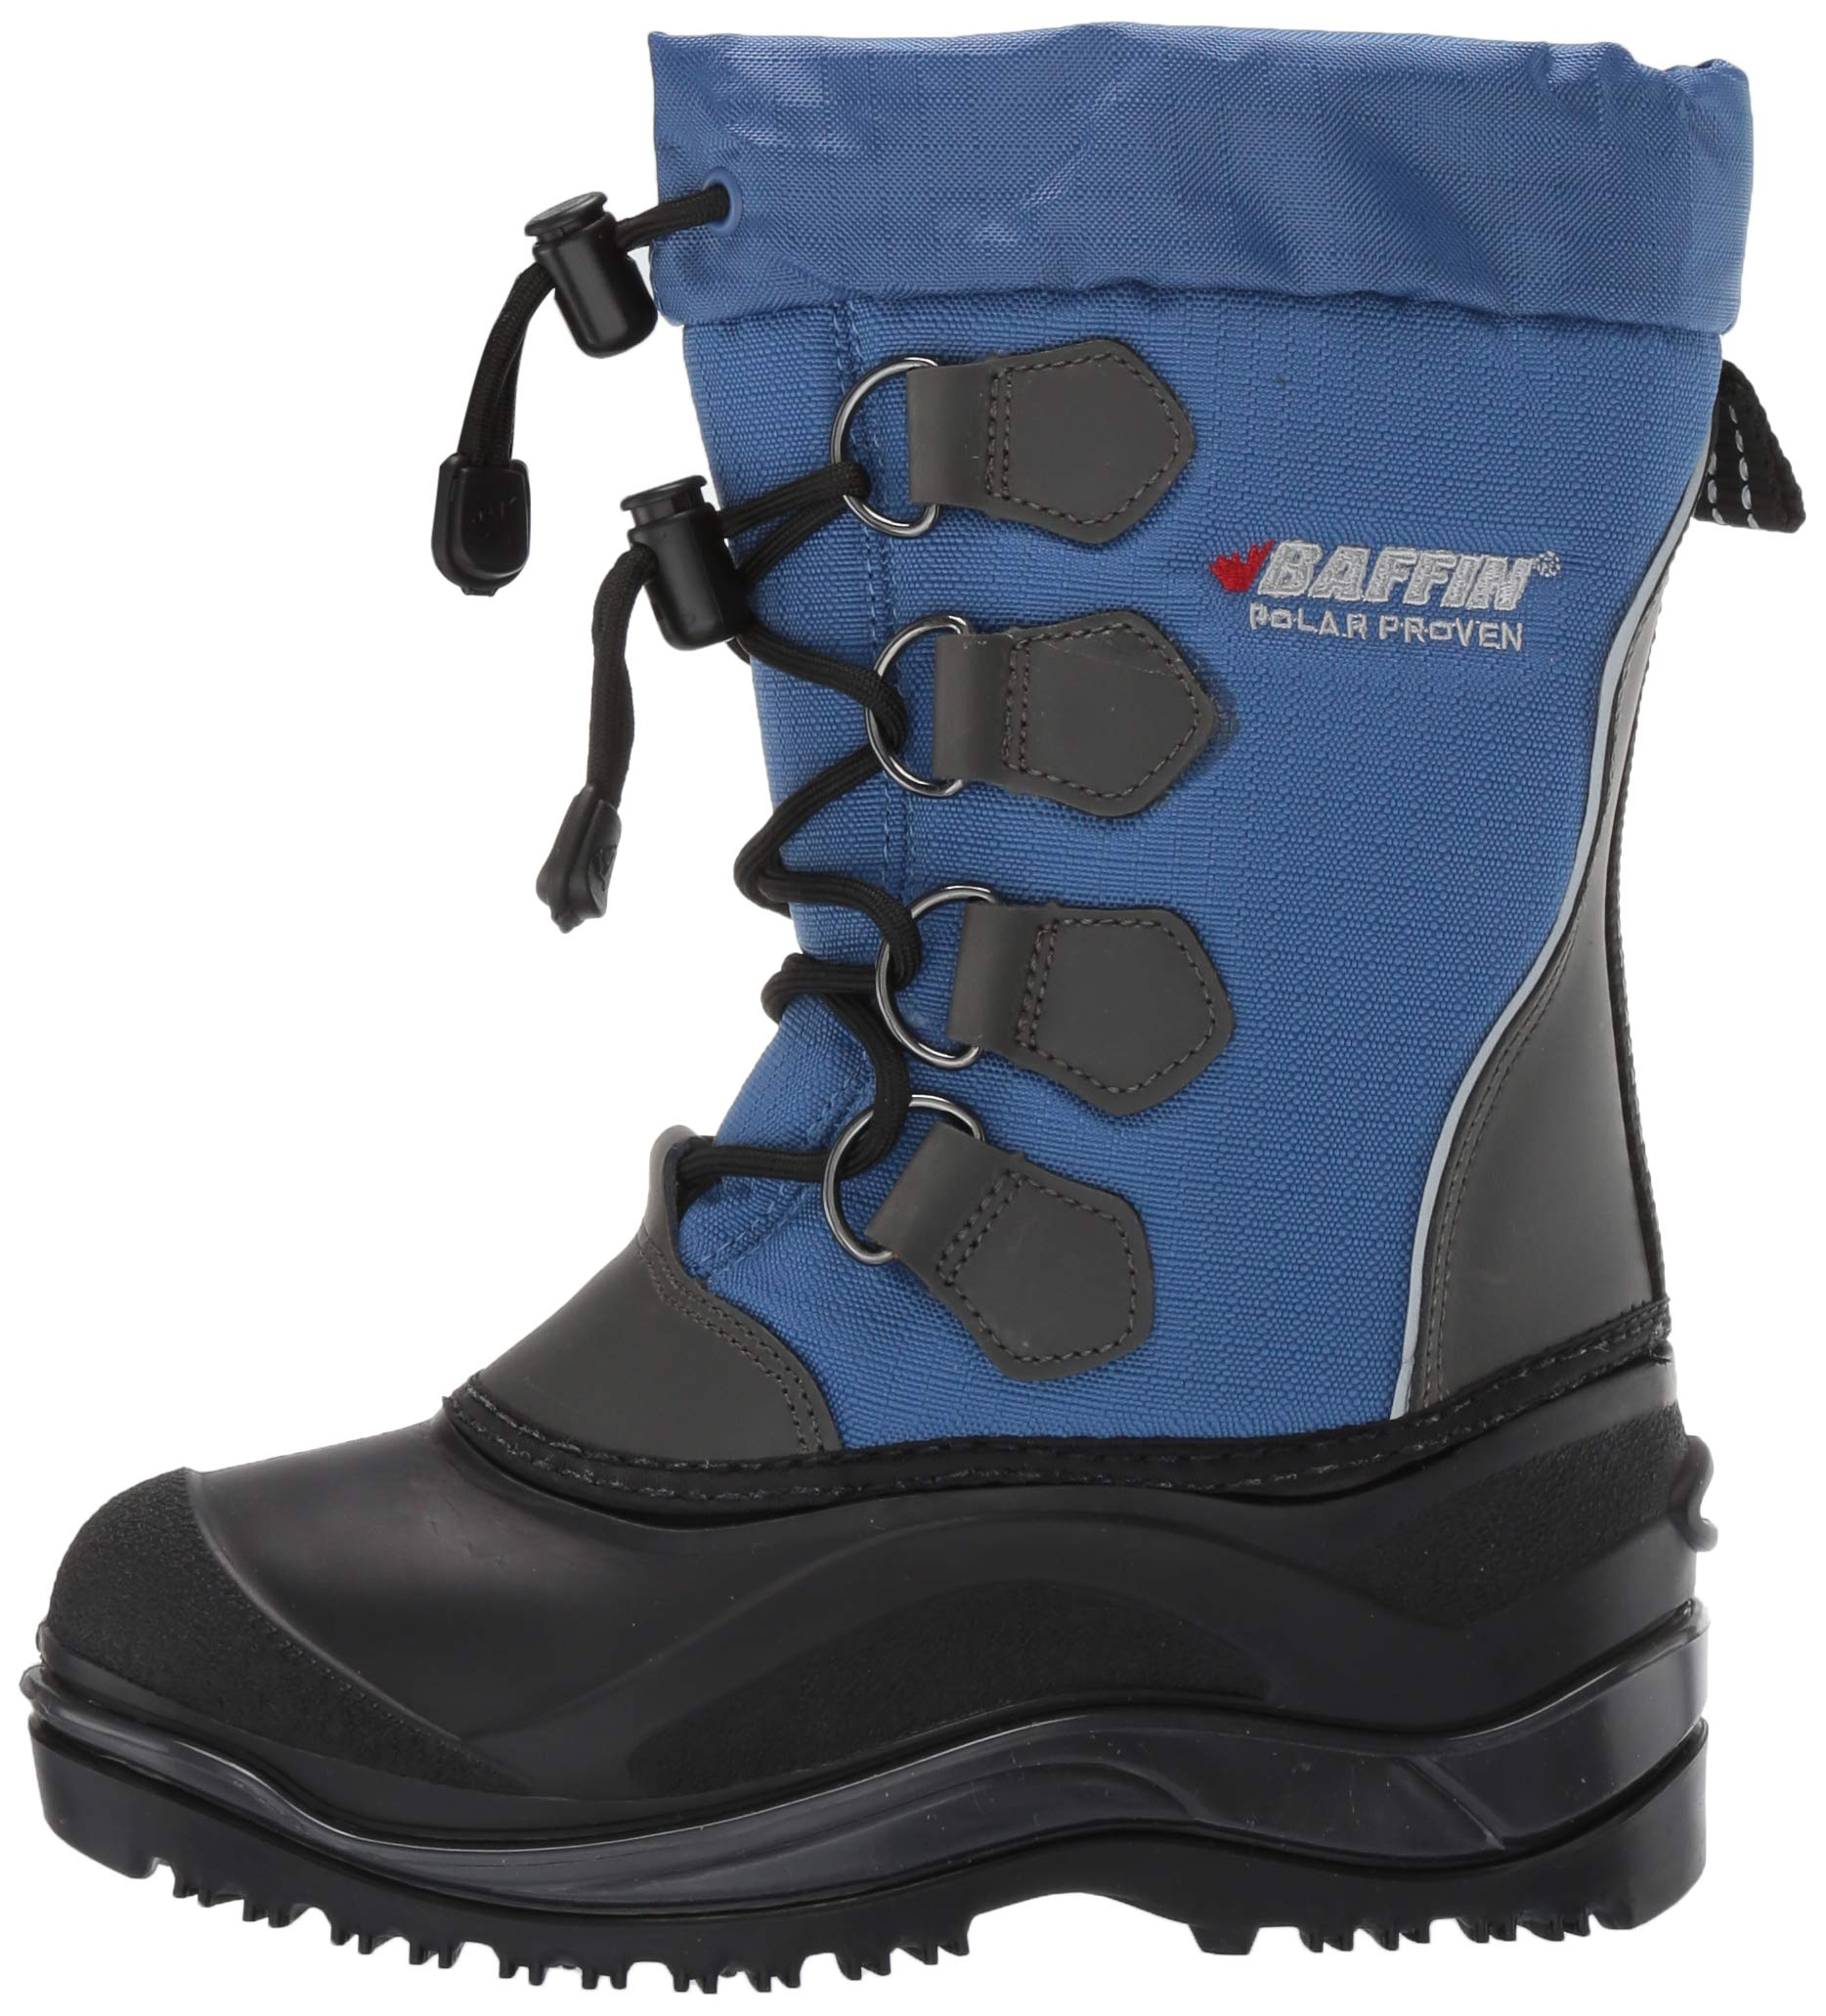 Baffin Unisex SNOWPACK Snow Boot, Blue, 2 Youth US Little Kid by Baffin (Image #5)